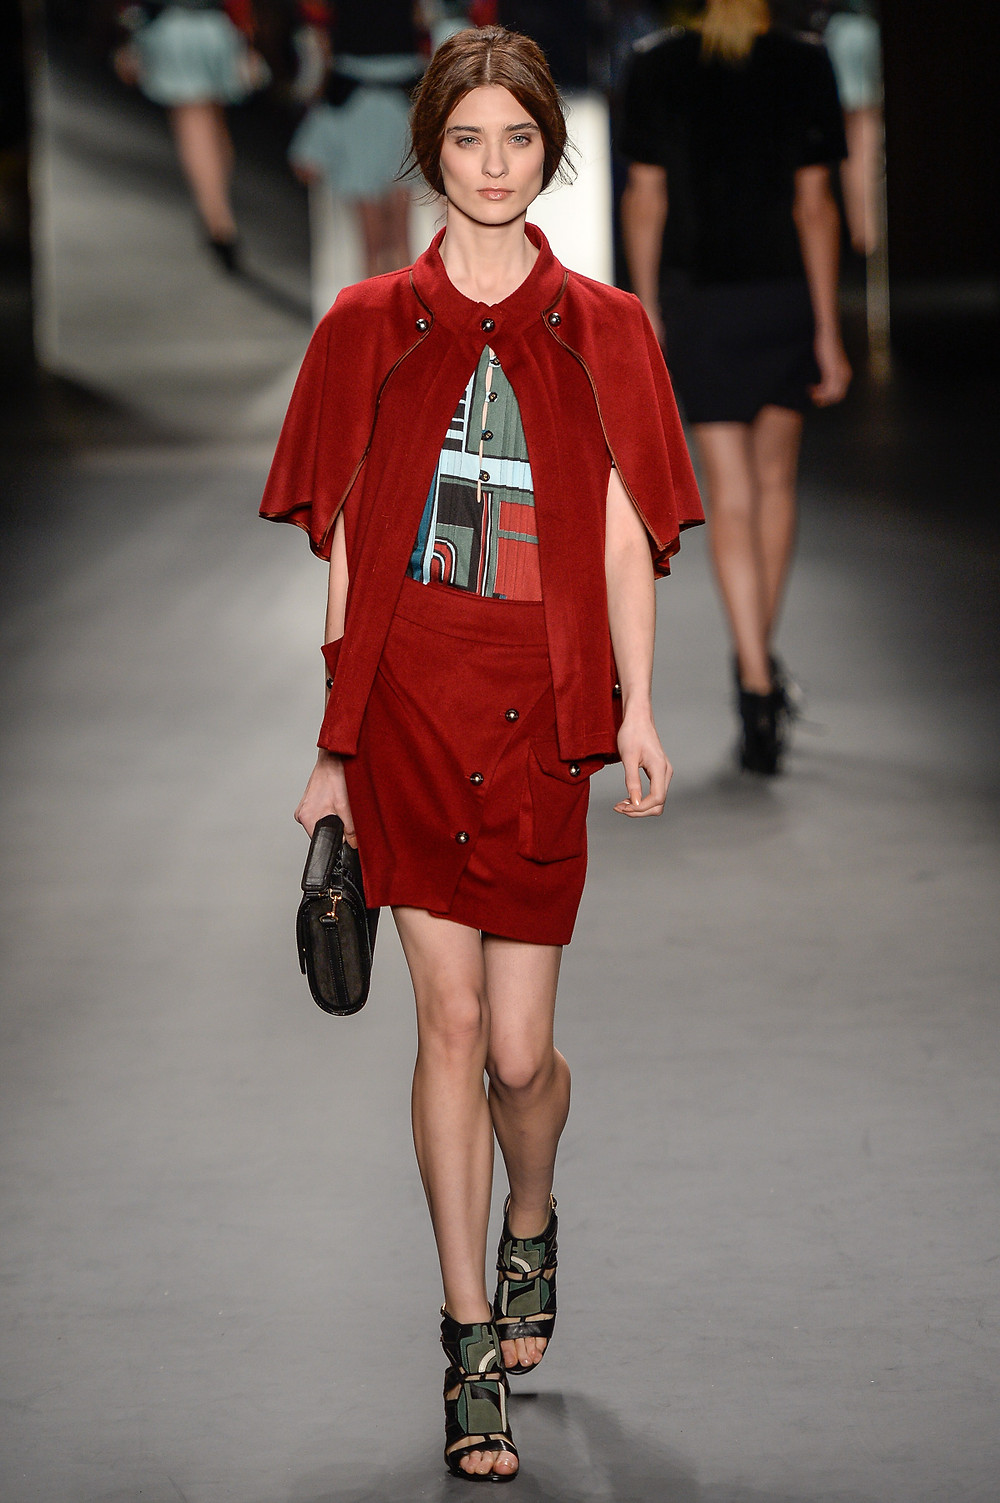 lilly-sarti-spfw-inverno2015-07.jpg